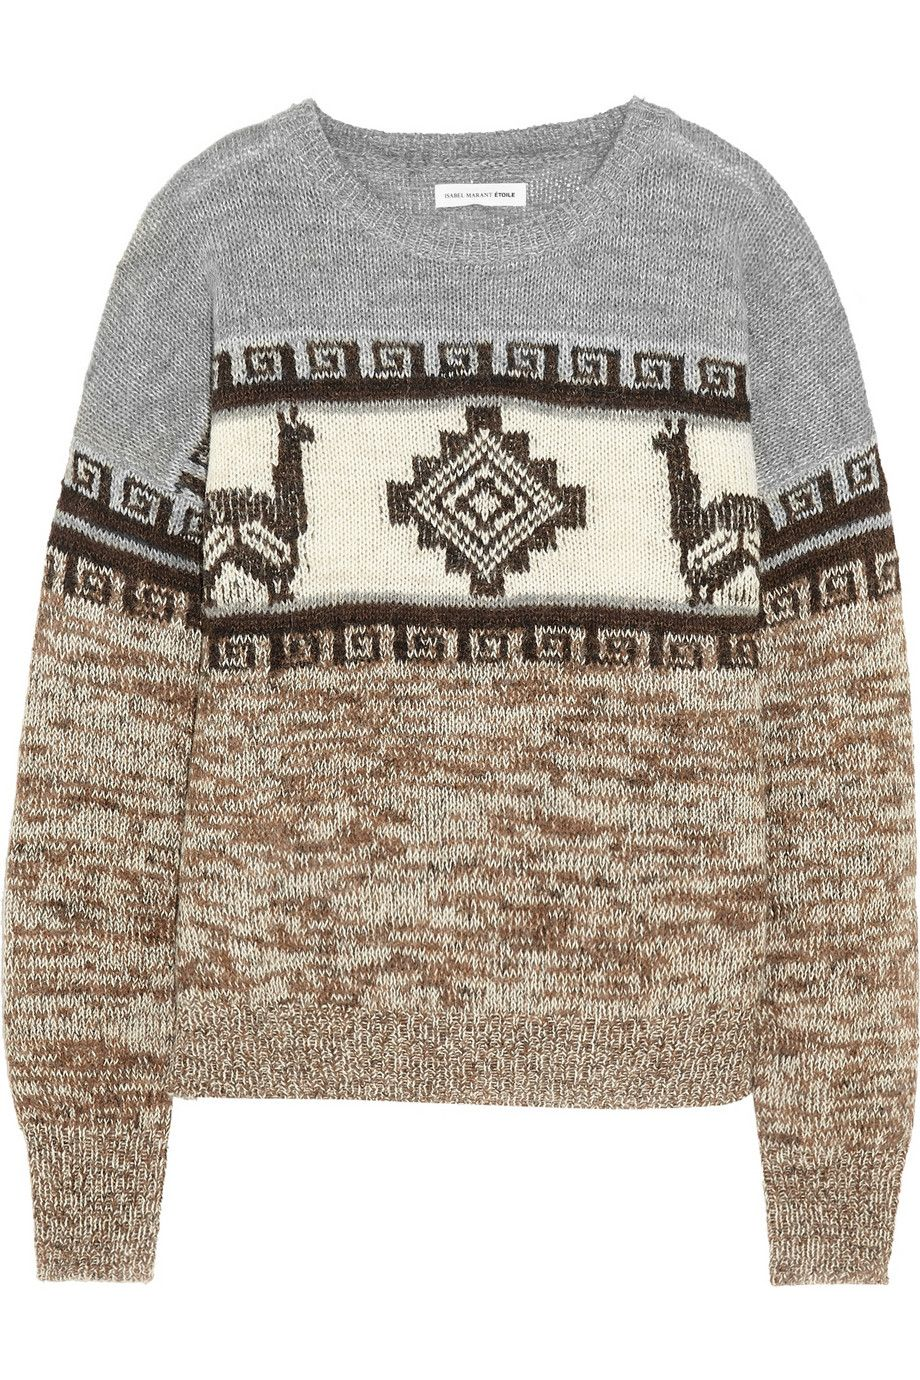 50+ Sweater Weather images | sweater weather, sweaters, fashion